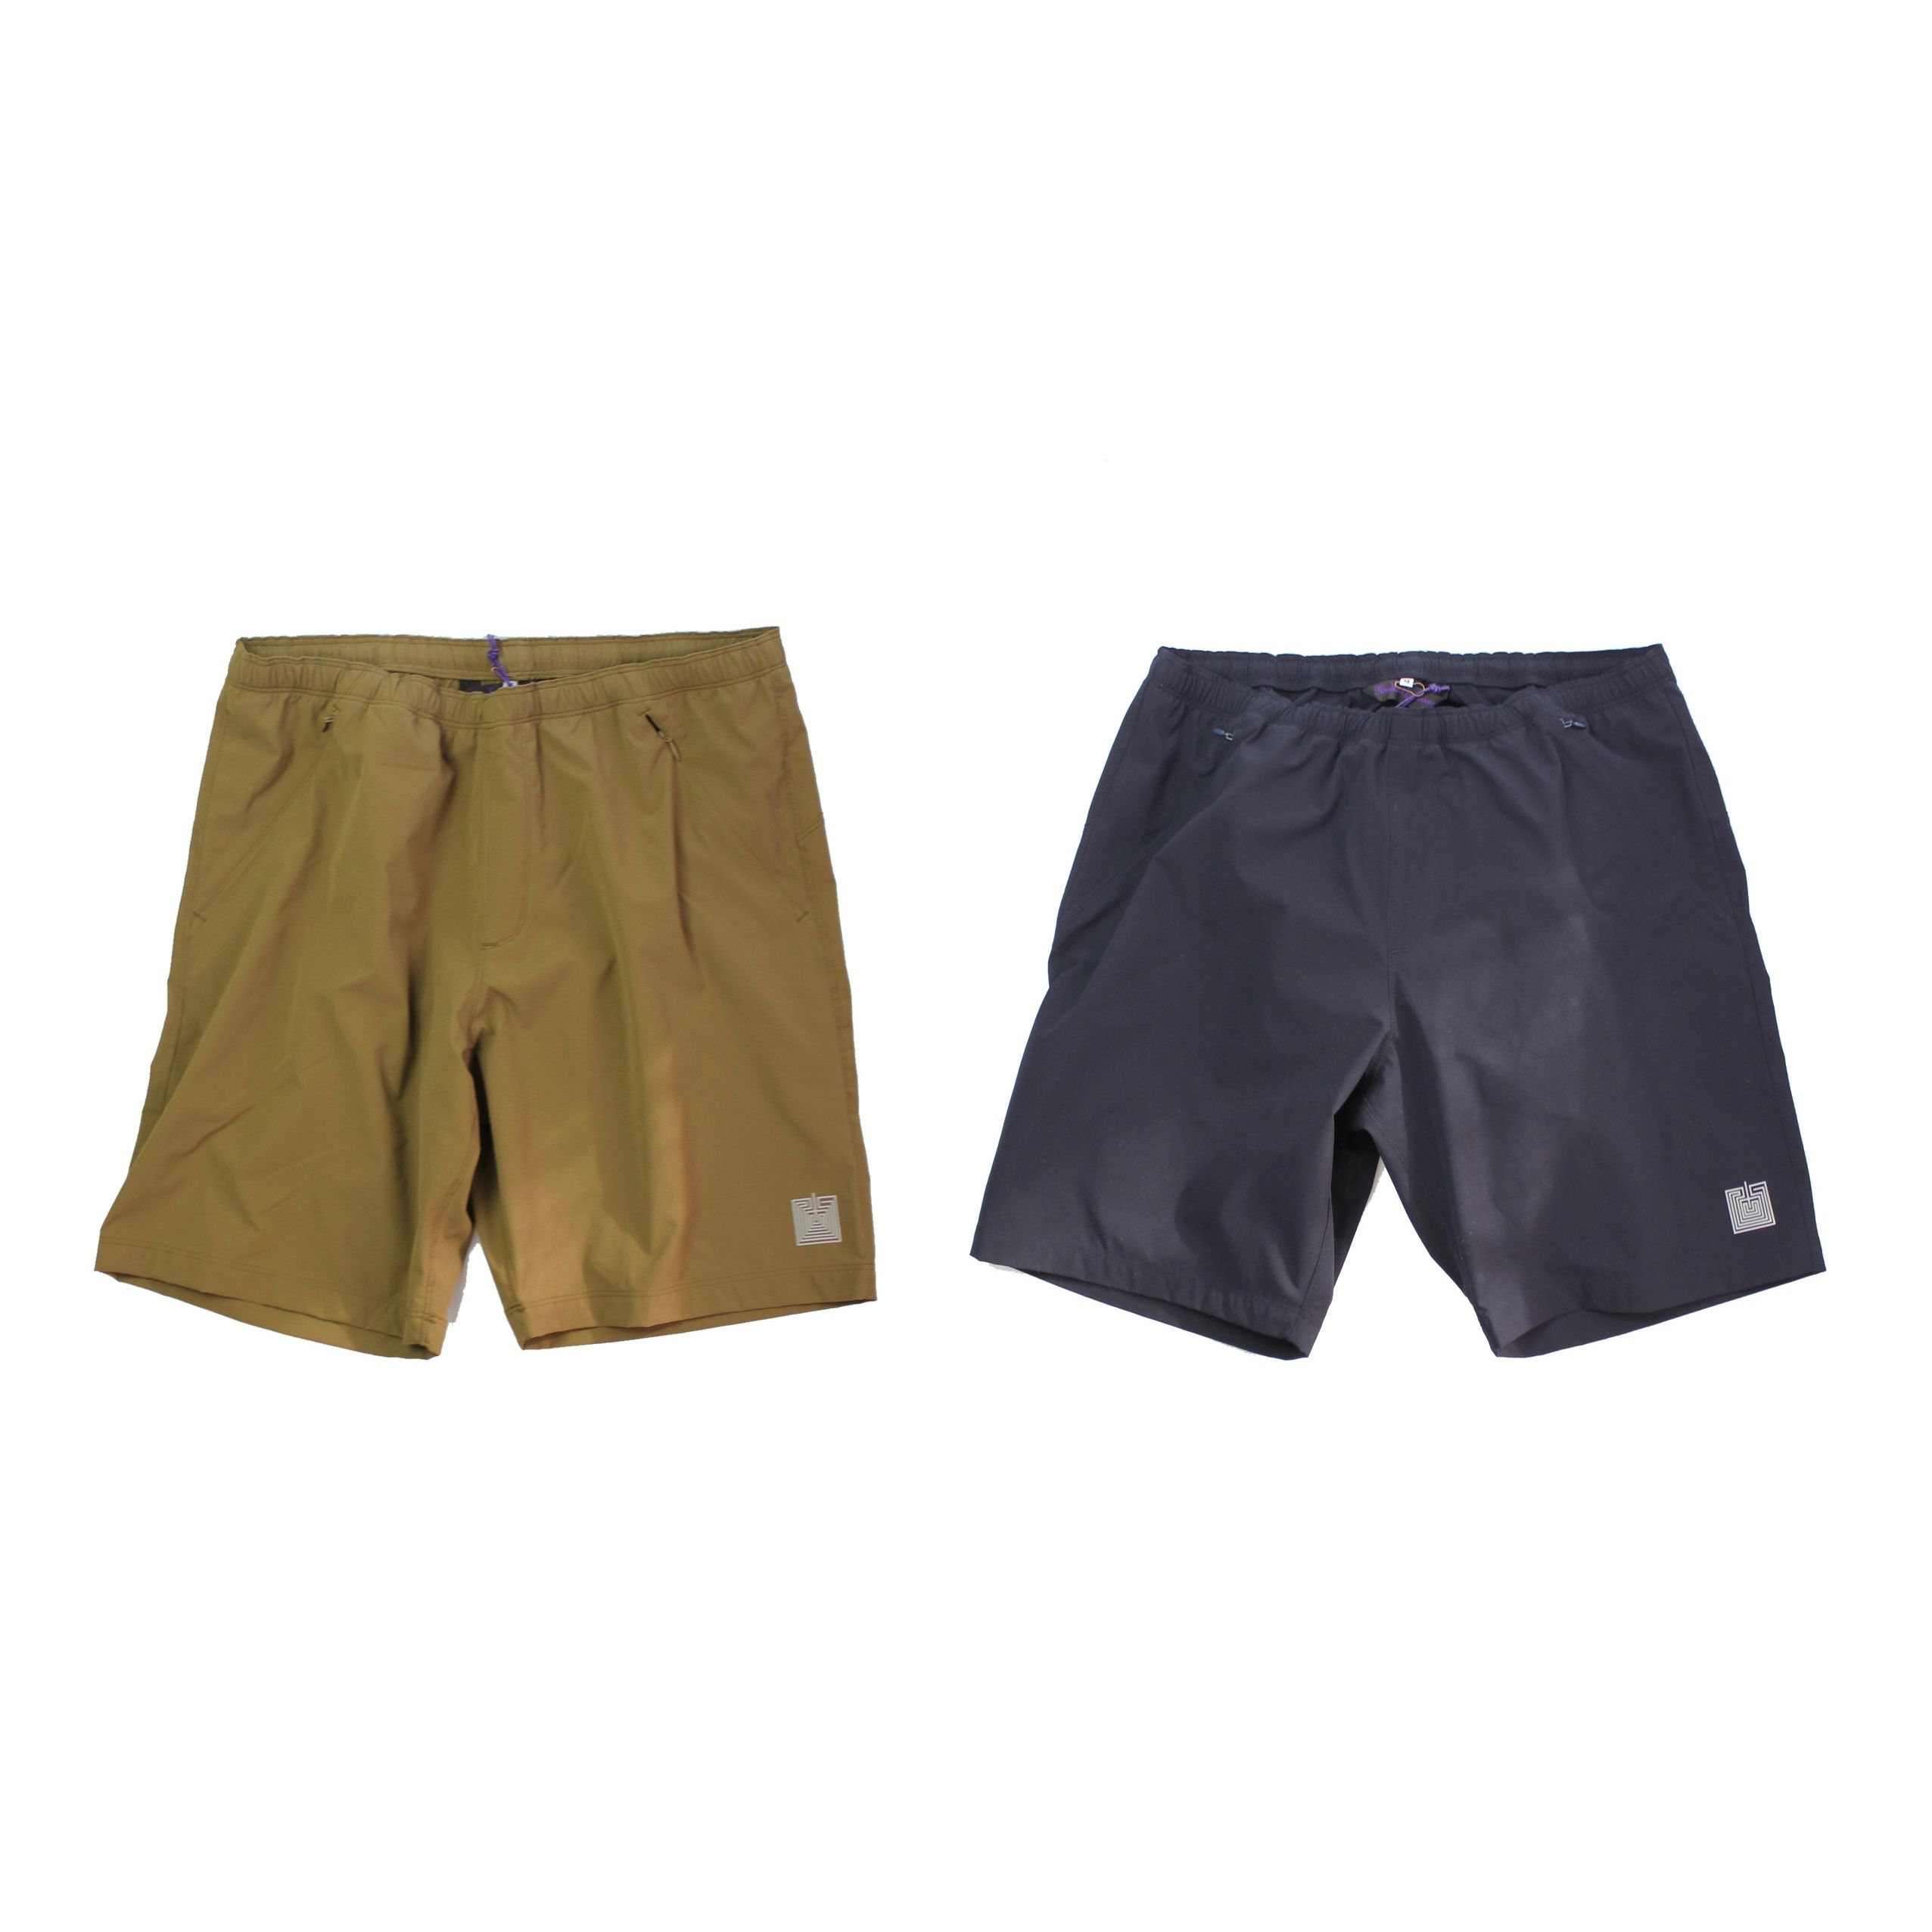 Needles Sports Wear - Warm-up short poly ripstop